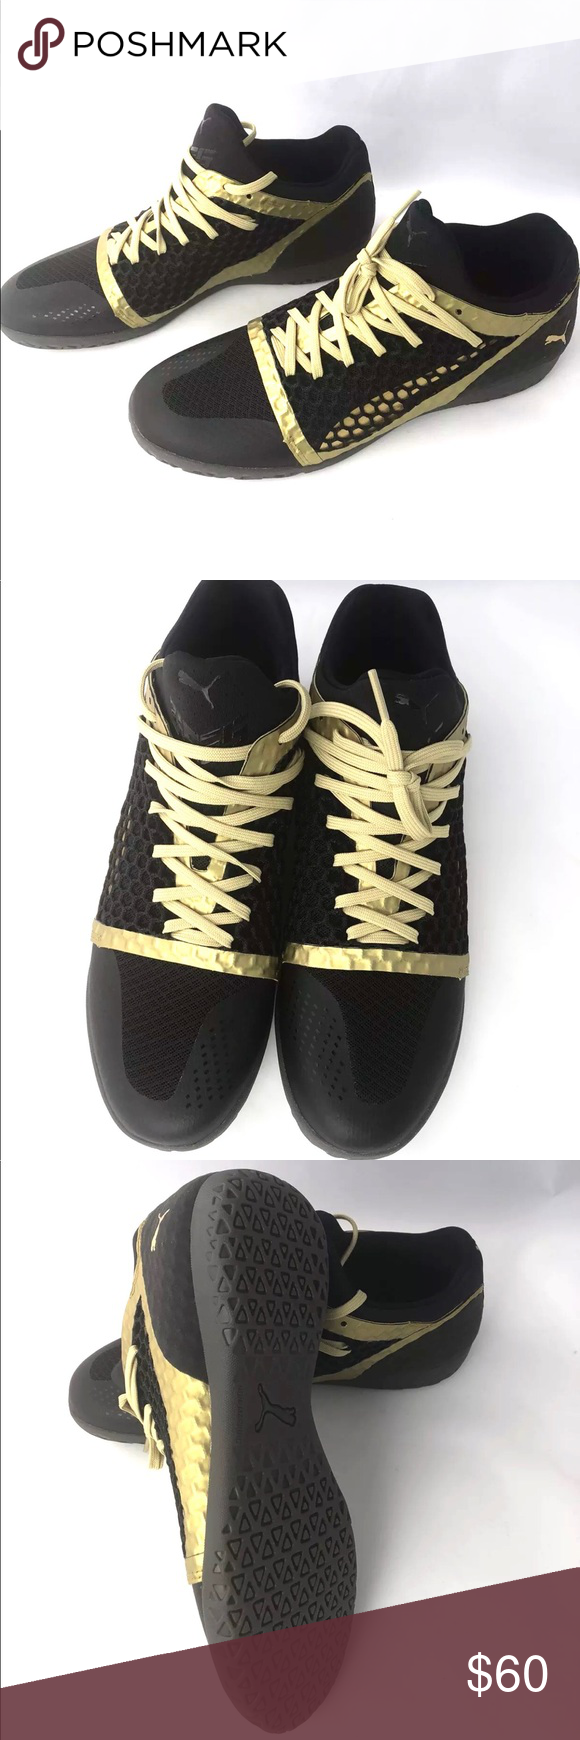 605dec91e Puma 365 Ignite Netfit CT Indoor Soccer Shoes Style #104474 09 Black and  gold New without box Puma Shoes Athletic Shoes